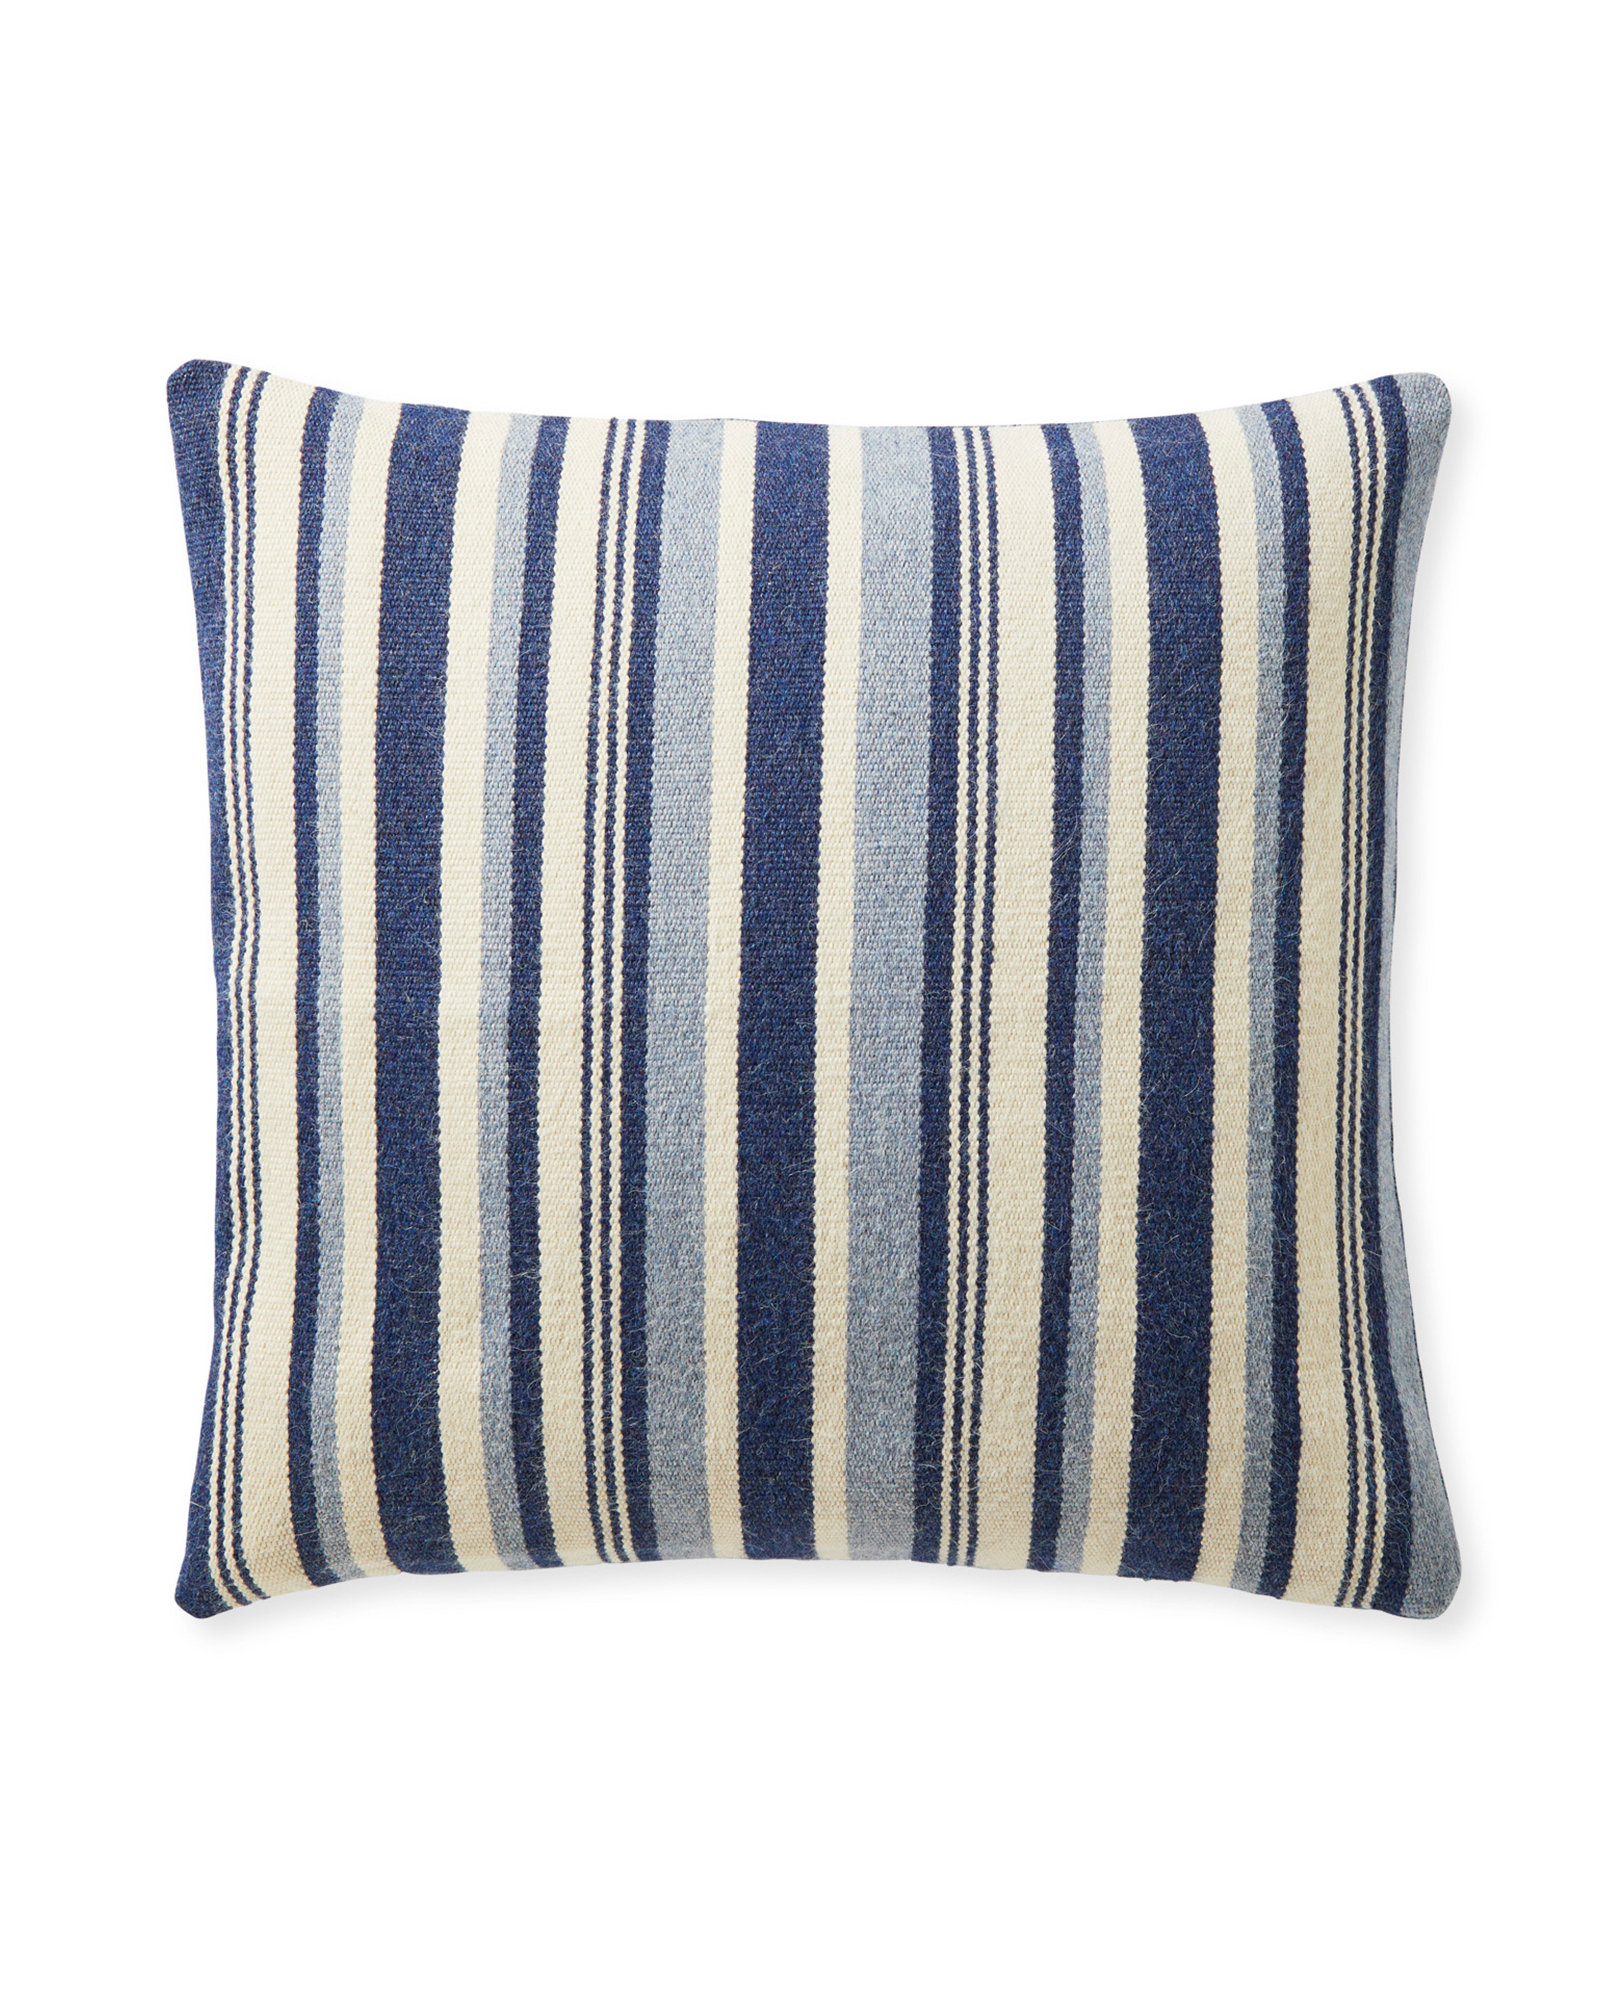 Lima Pillow Cover,